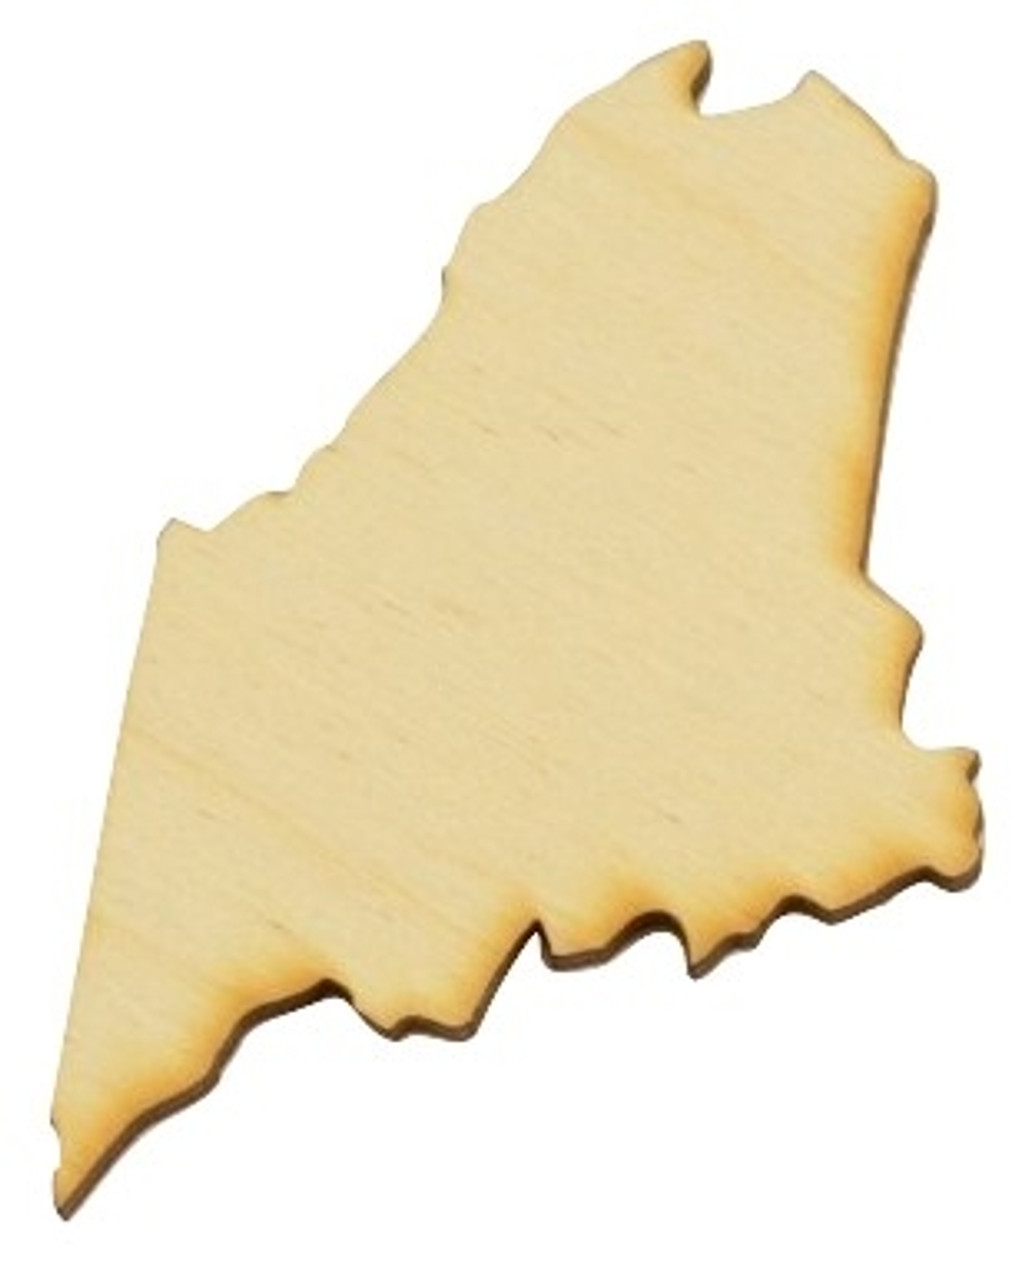 Kentucky US State Laser Cut Out Wood Shape Craft Supply